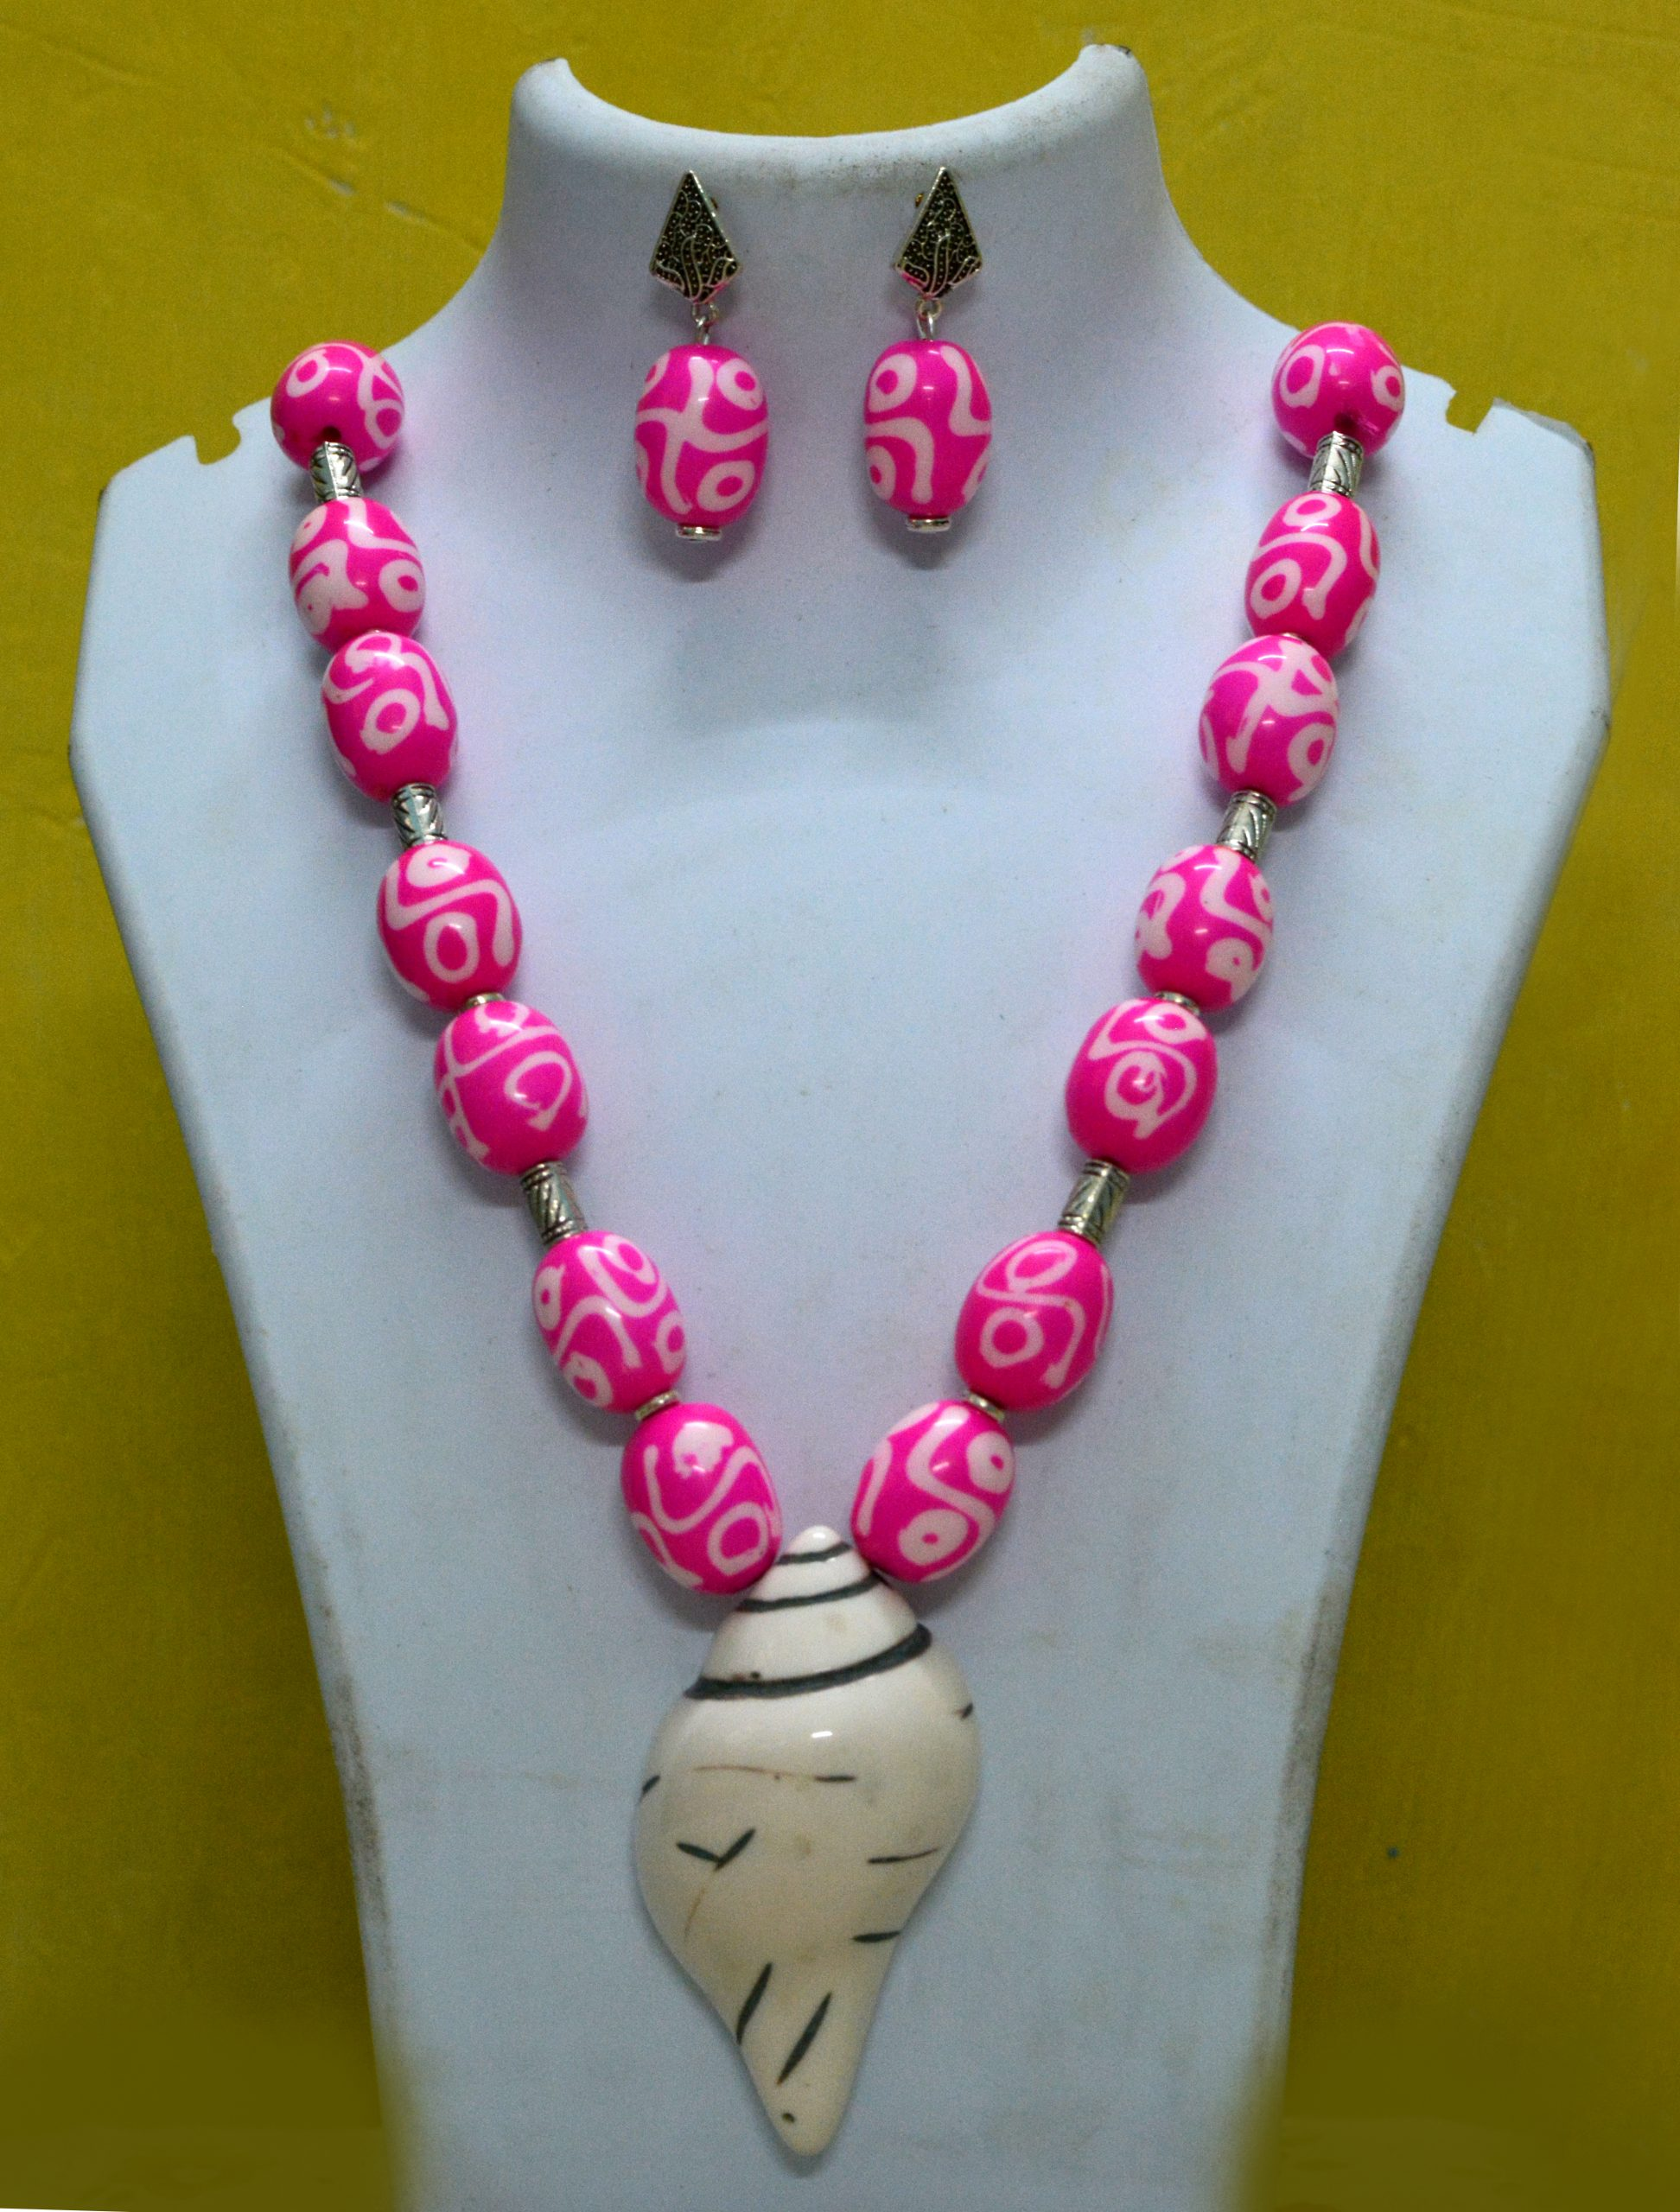 A necklace and earrings